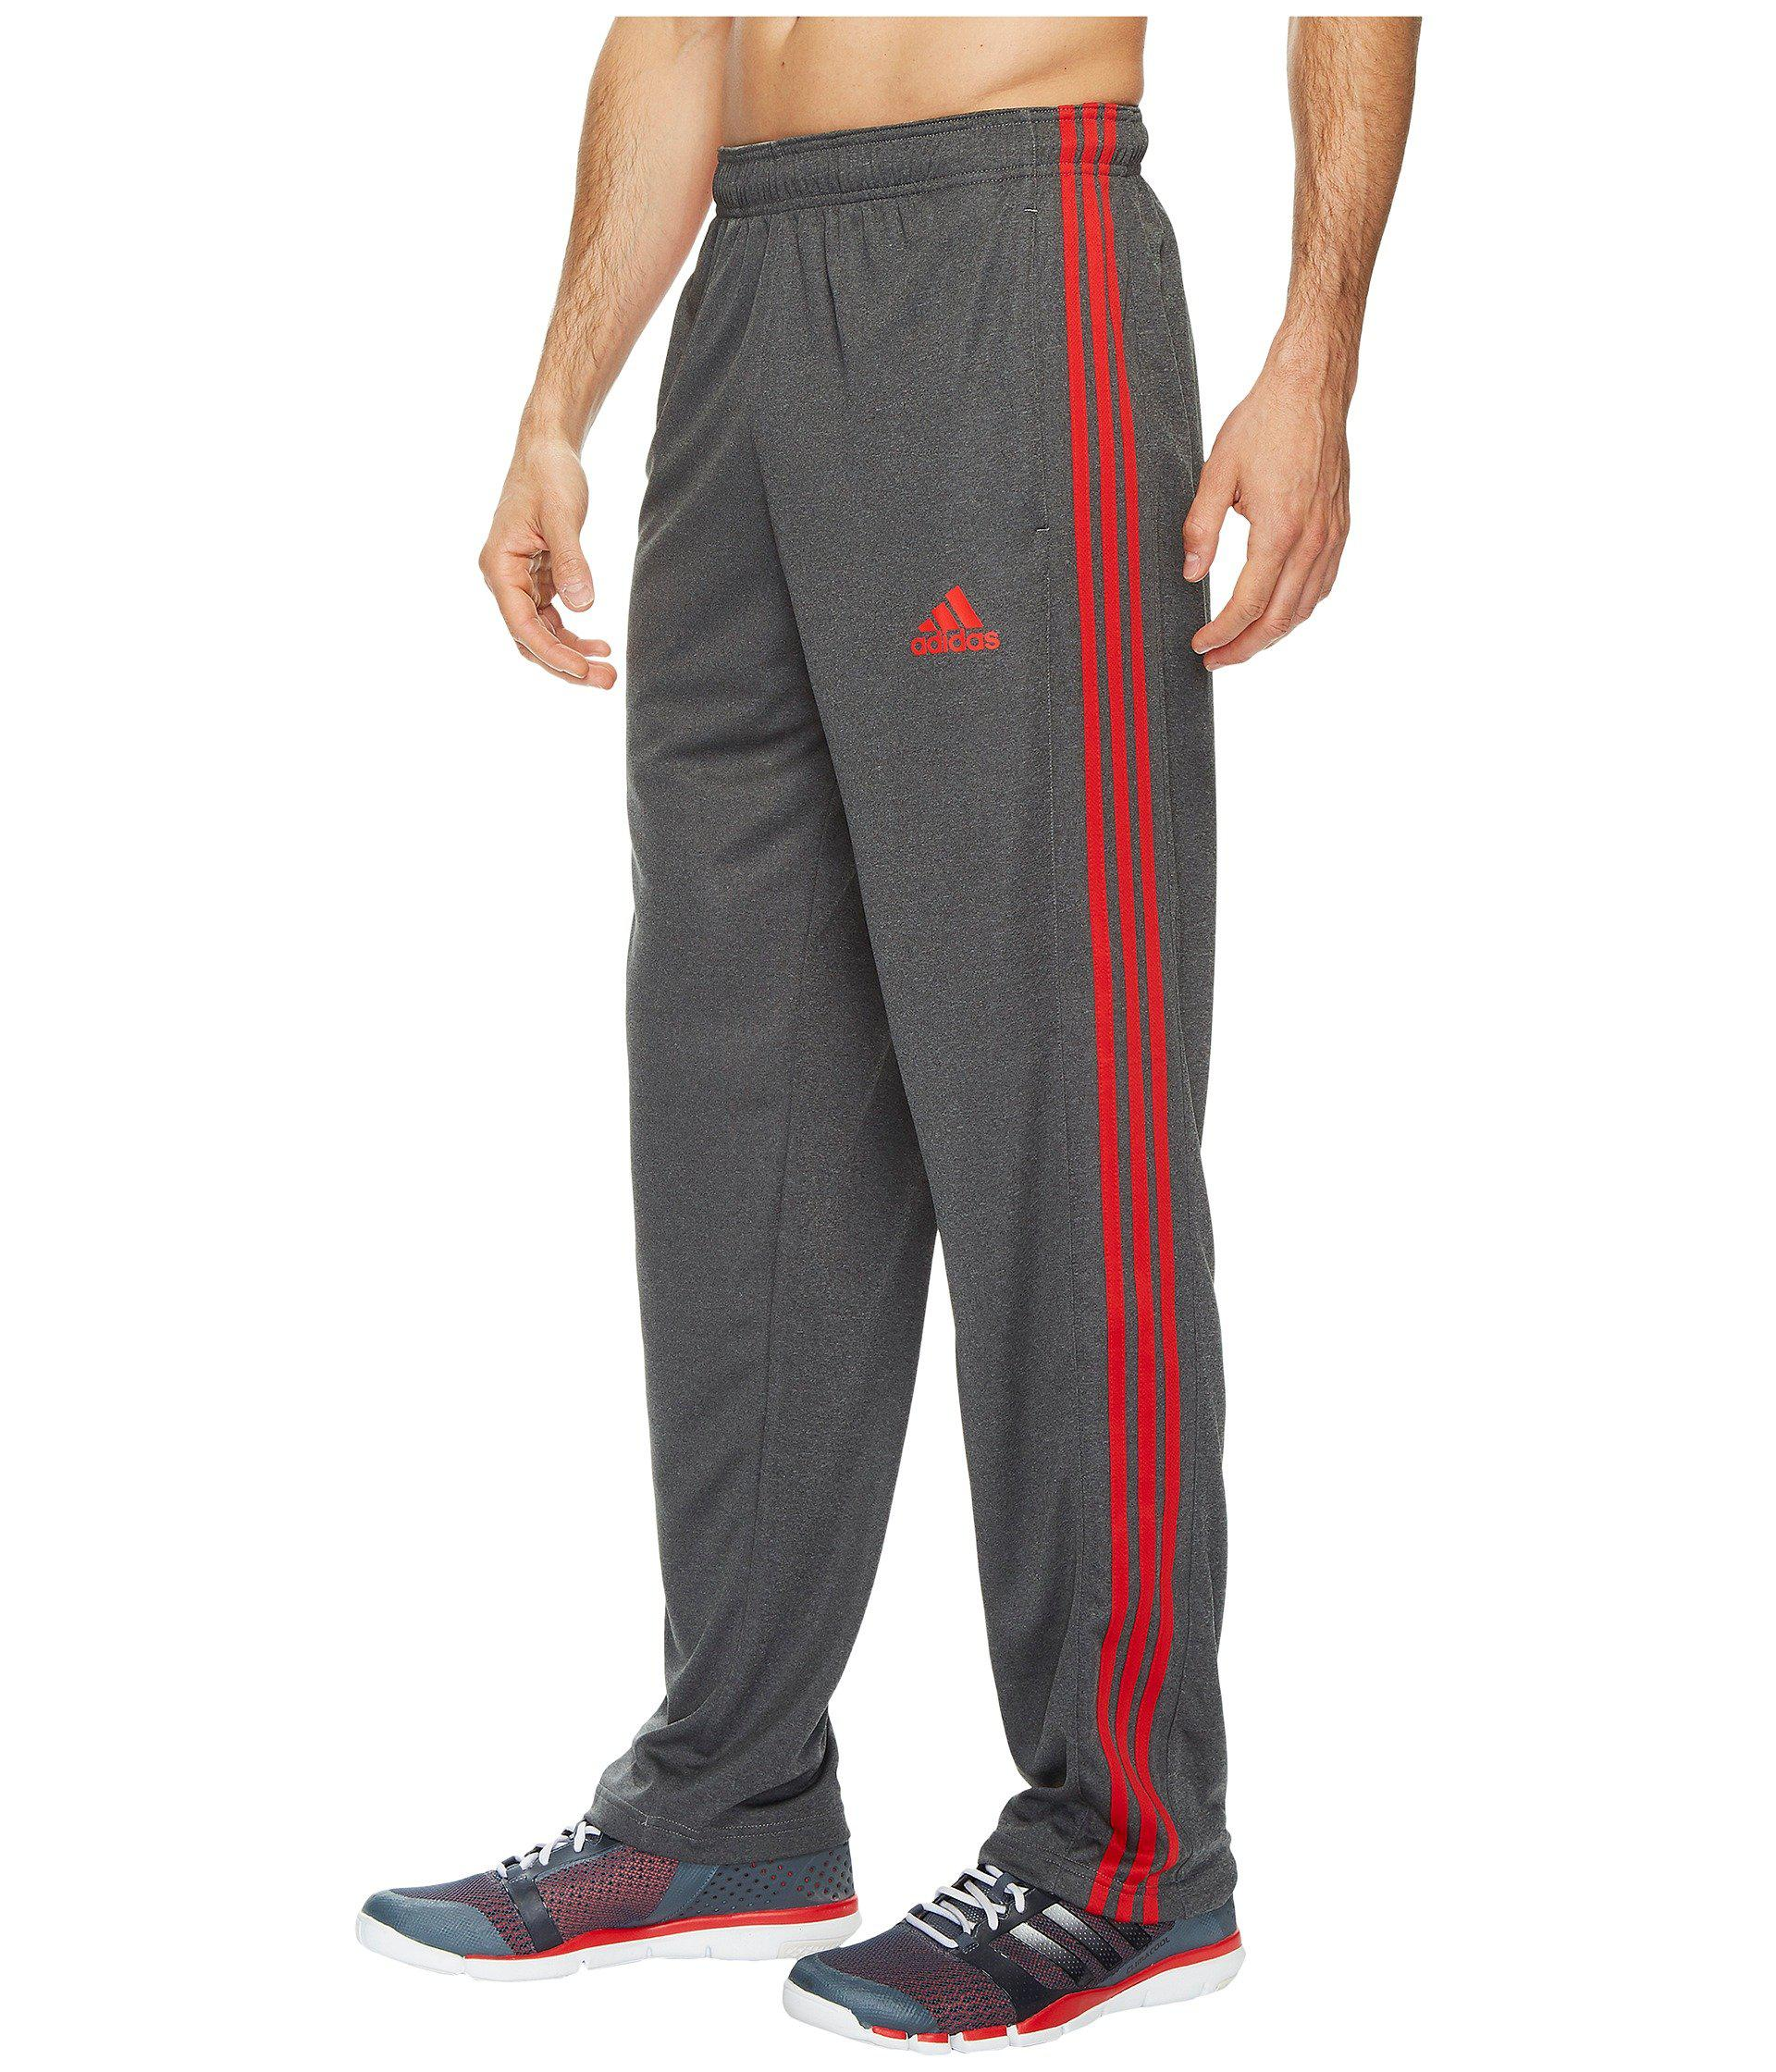 e13f95b3d Lyst - adidas Climacore 3-stripes Pant in Gray for Men